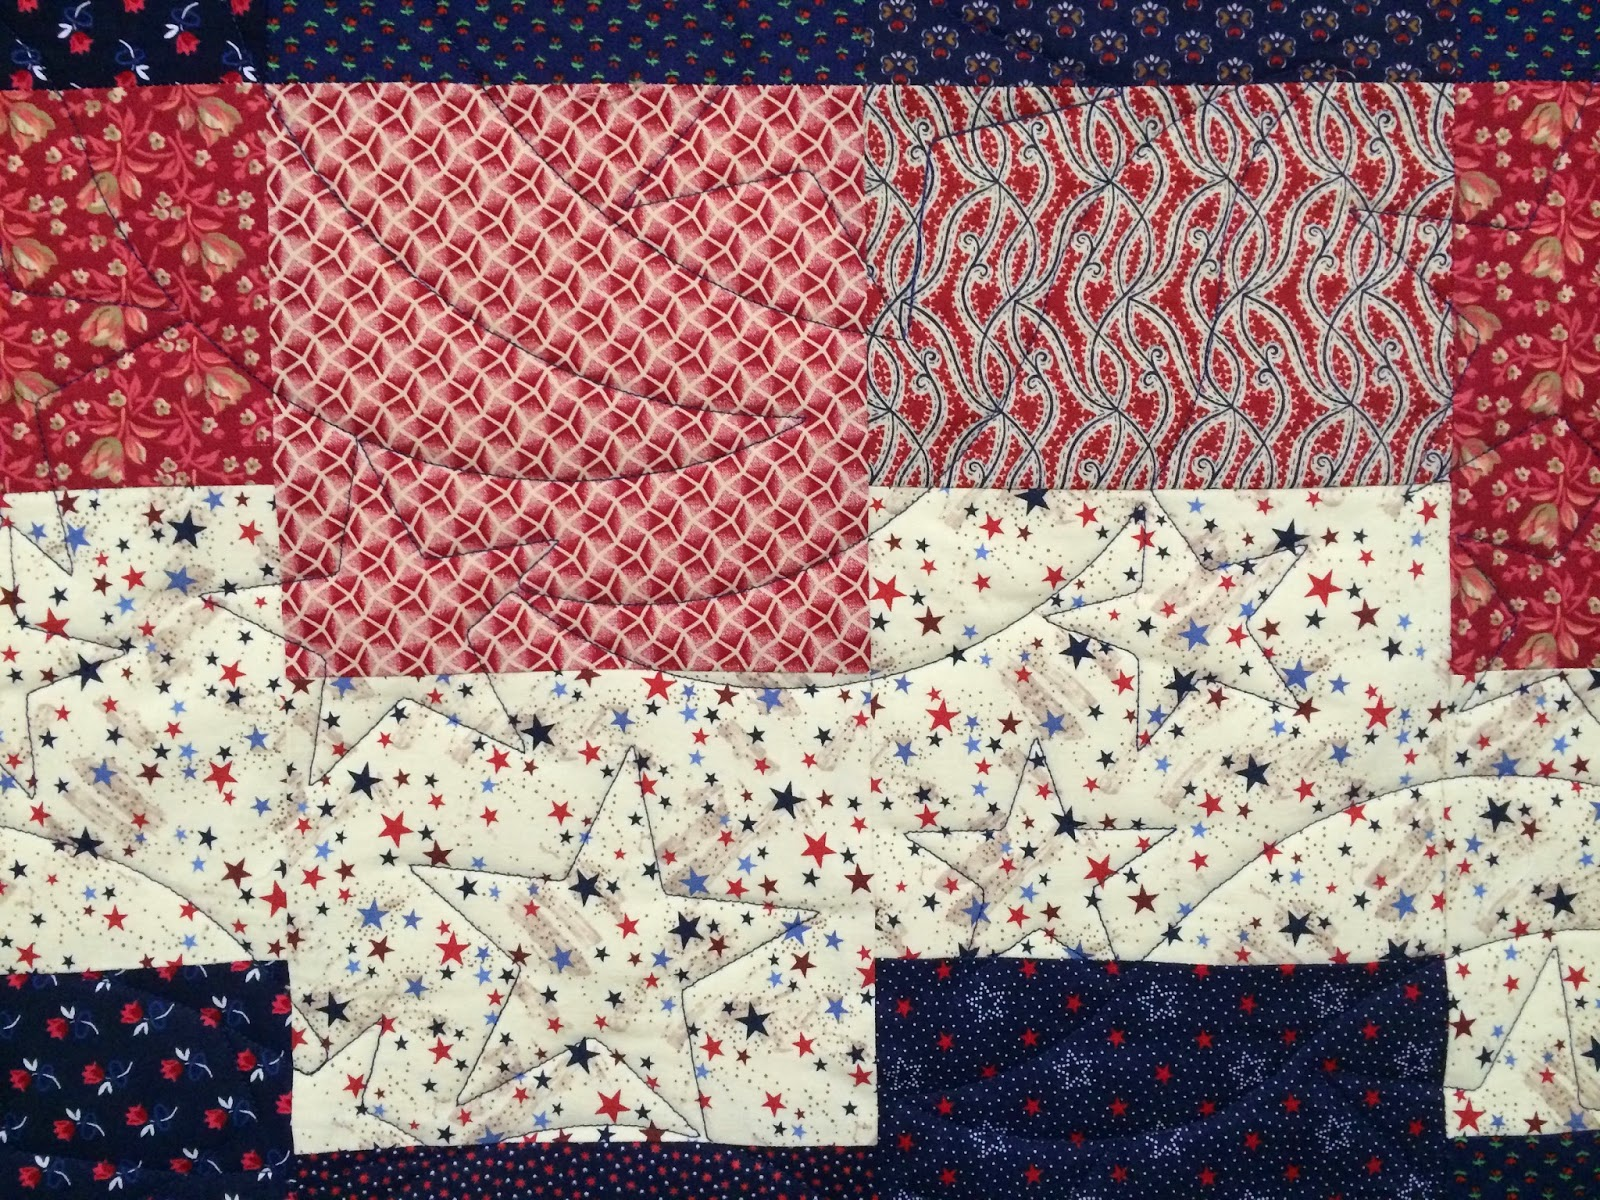 Debbie Seitz's Red, White and Blue Quilt